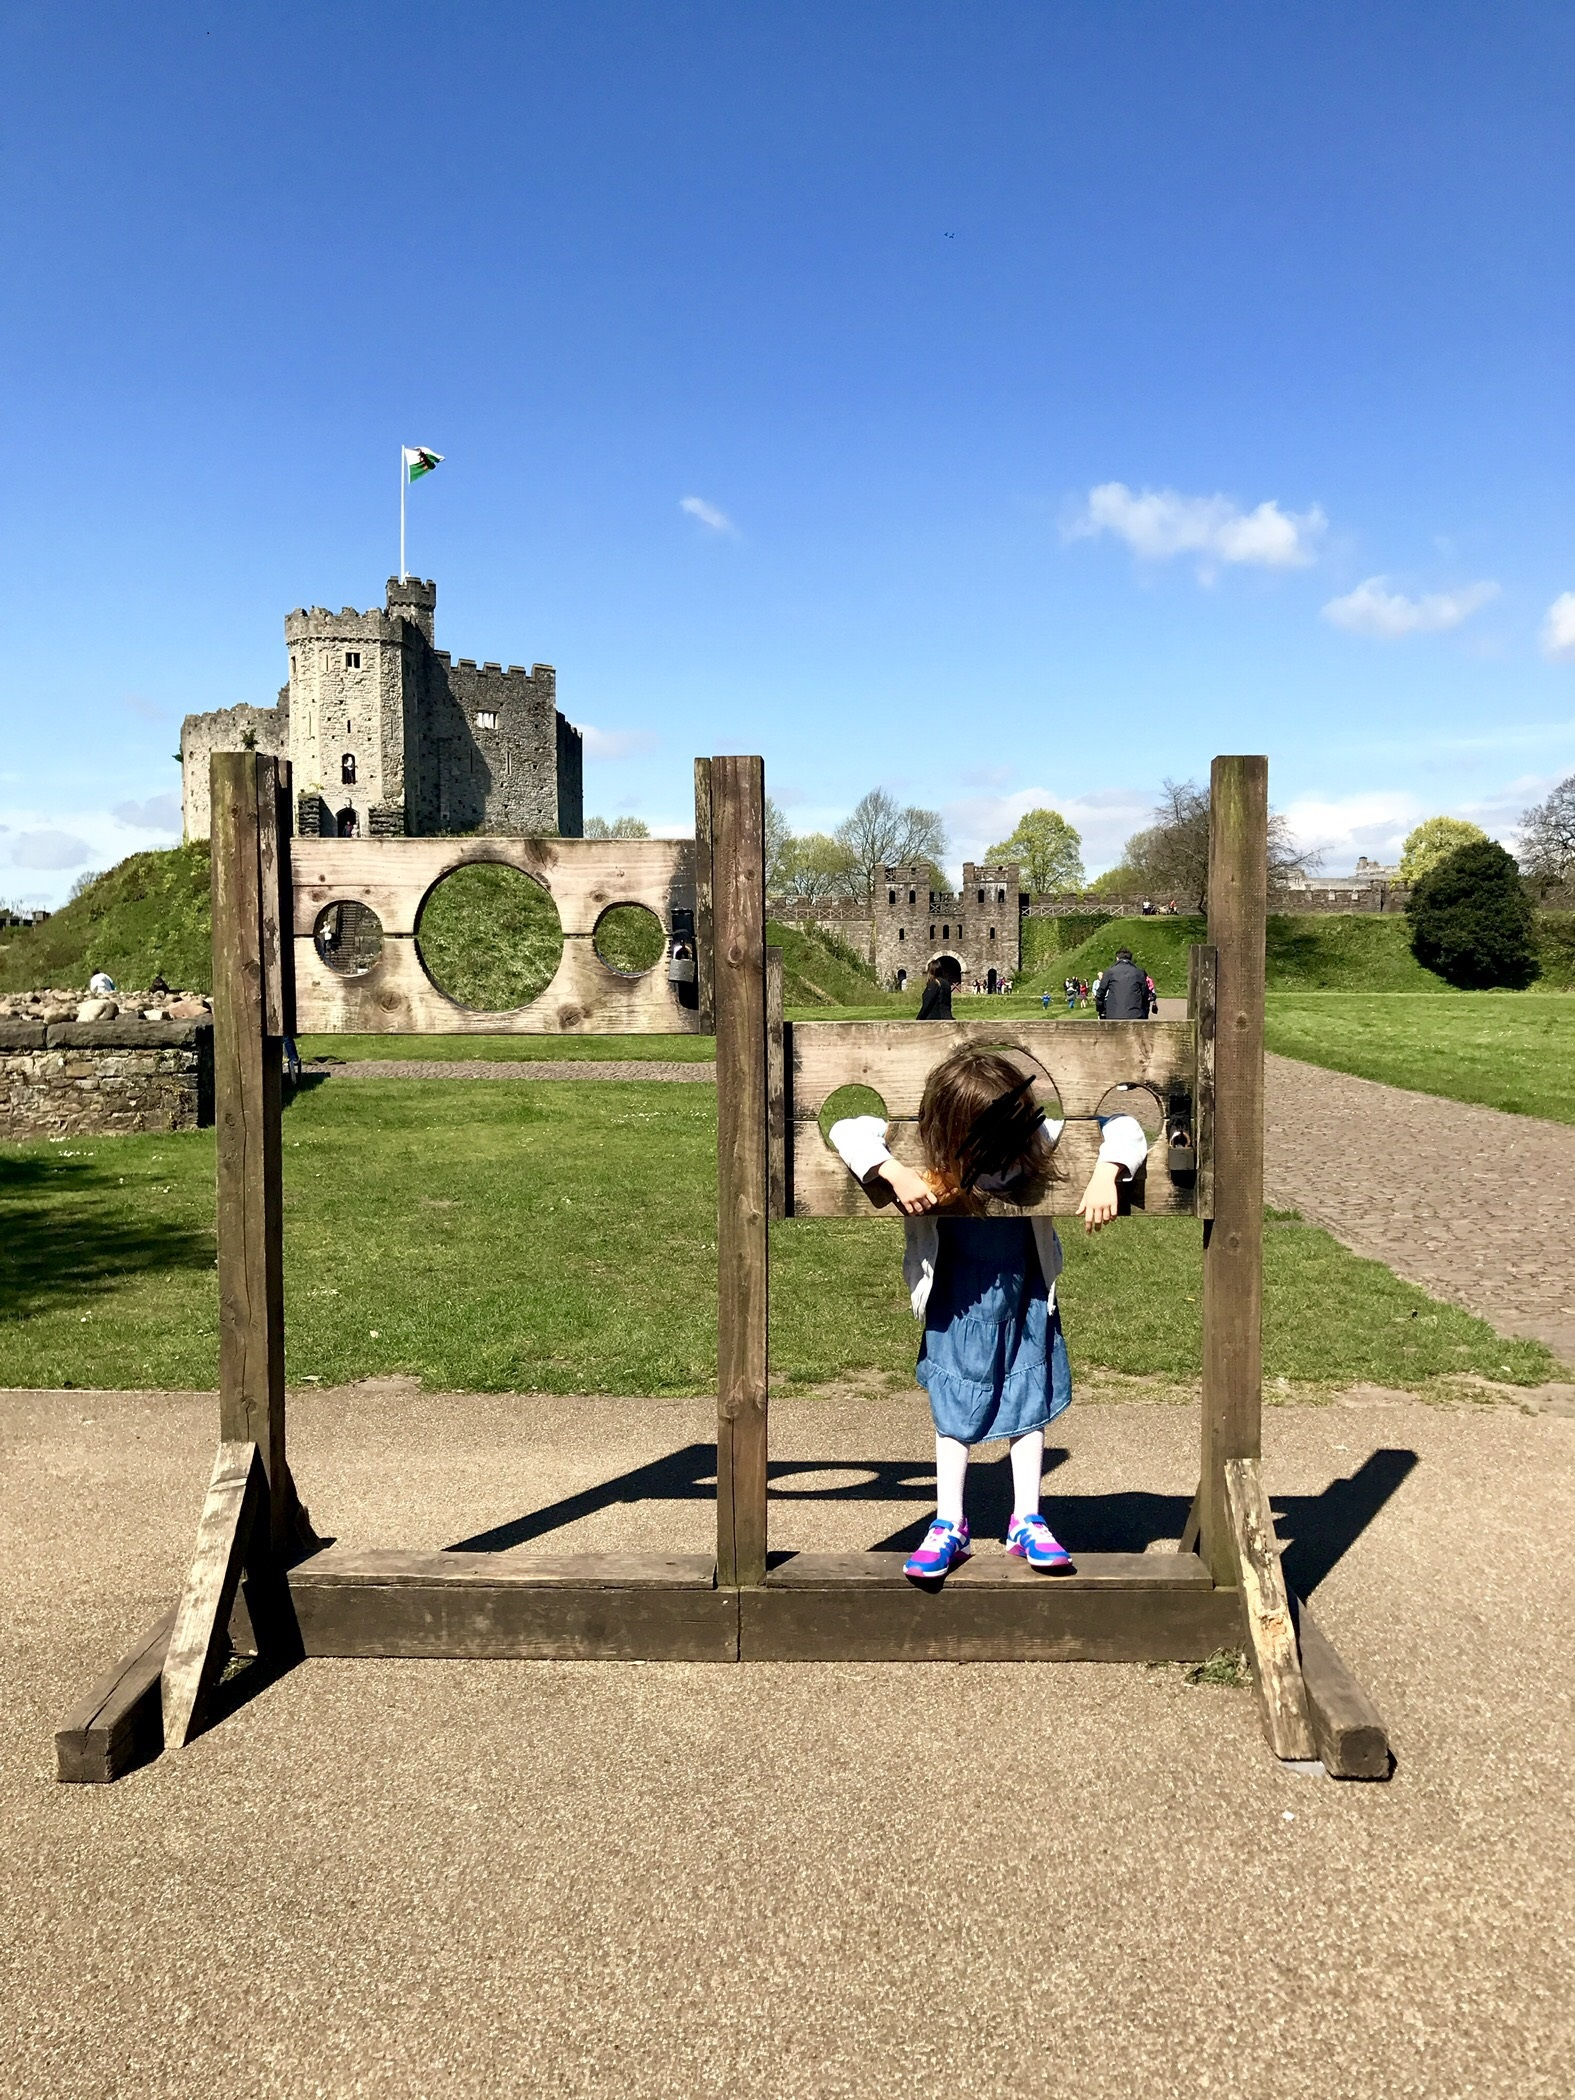 Cardiff Castle stocks